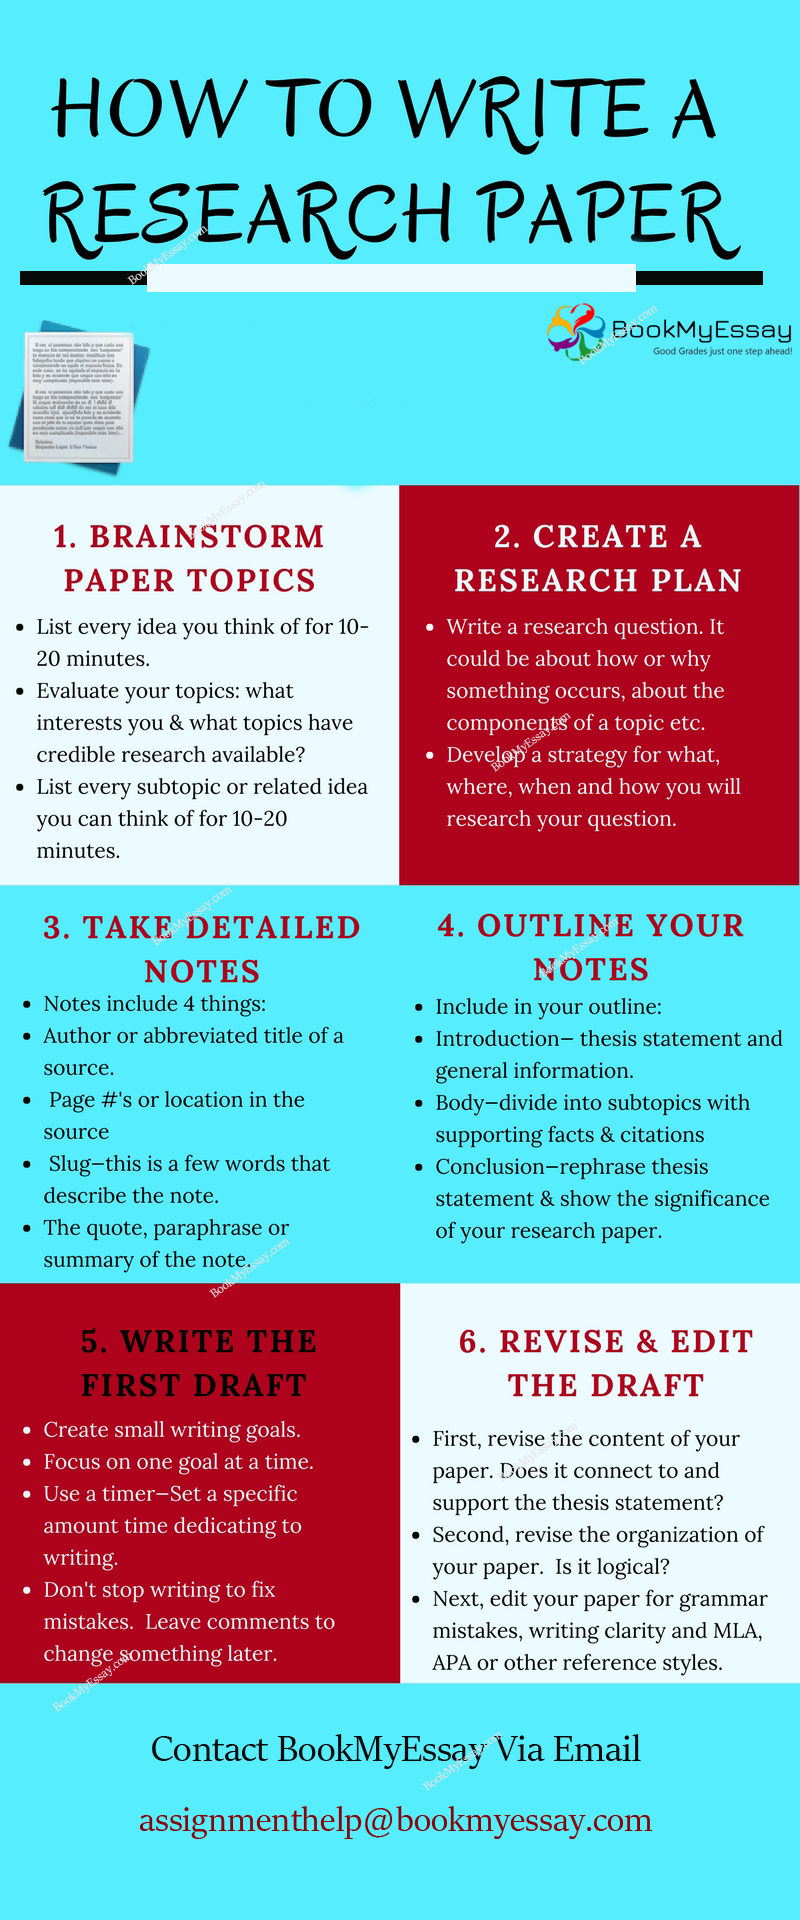 015 Tips Writing Research Paper Wonderful For A Fast Apa Full